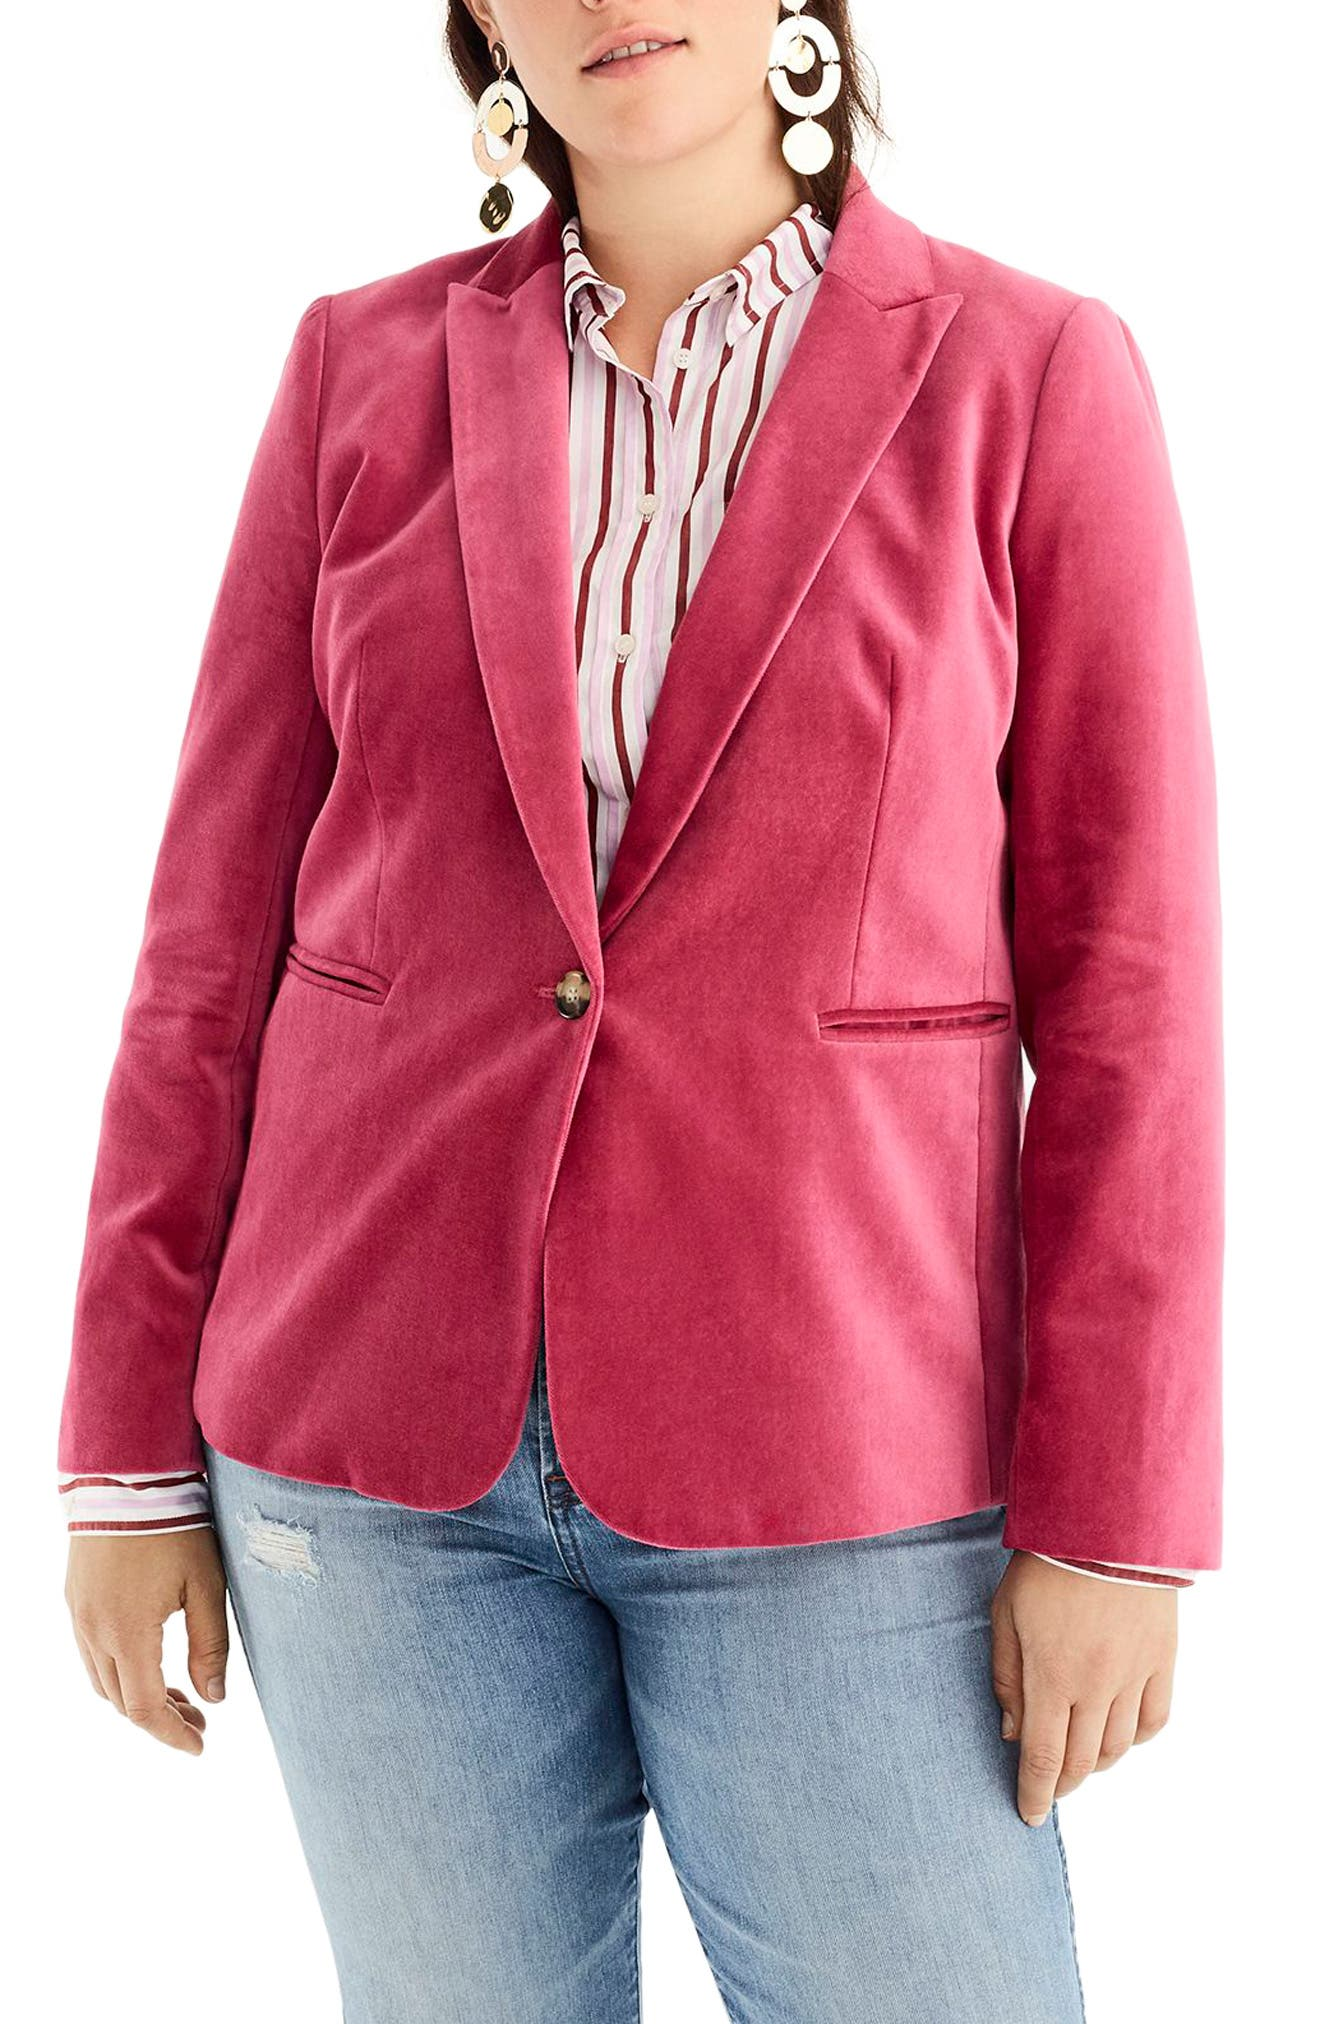 Parke Velvet Blazer,                             Alternate thumbnail 2, color,                             DRIED ROSE